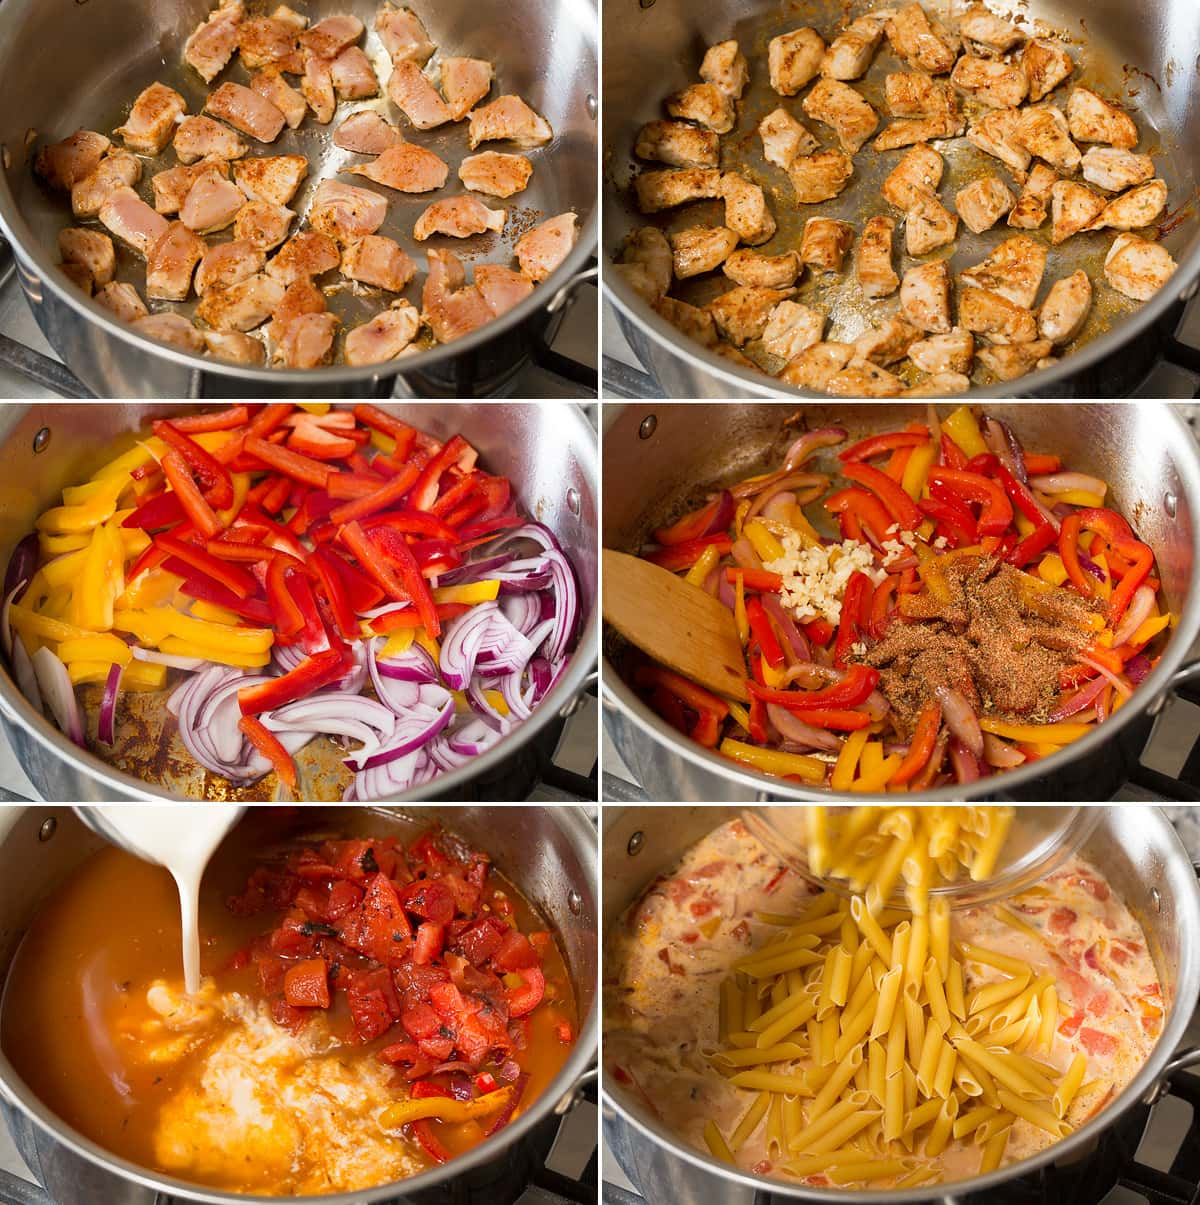 Photo: Collage of six images showing steps of browning chicken in pot, sautéing vegetables, adding liquid and pasta to pot for a cajun chicken pasta recipe.